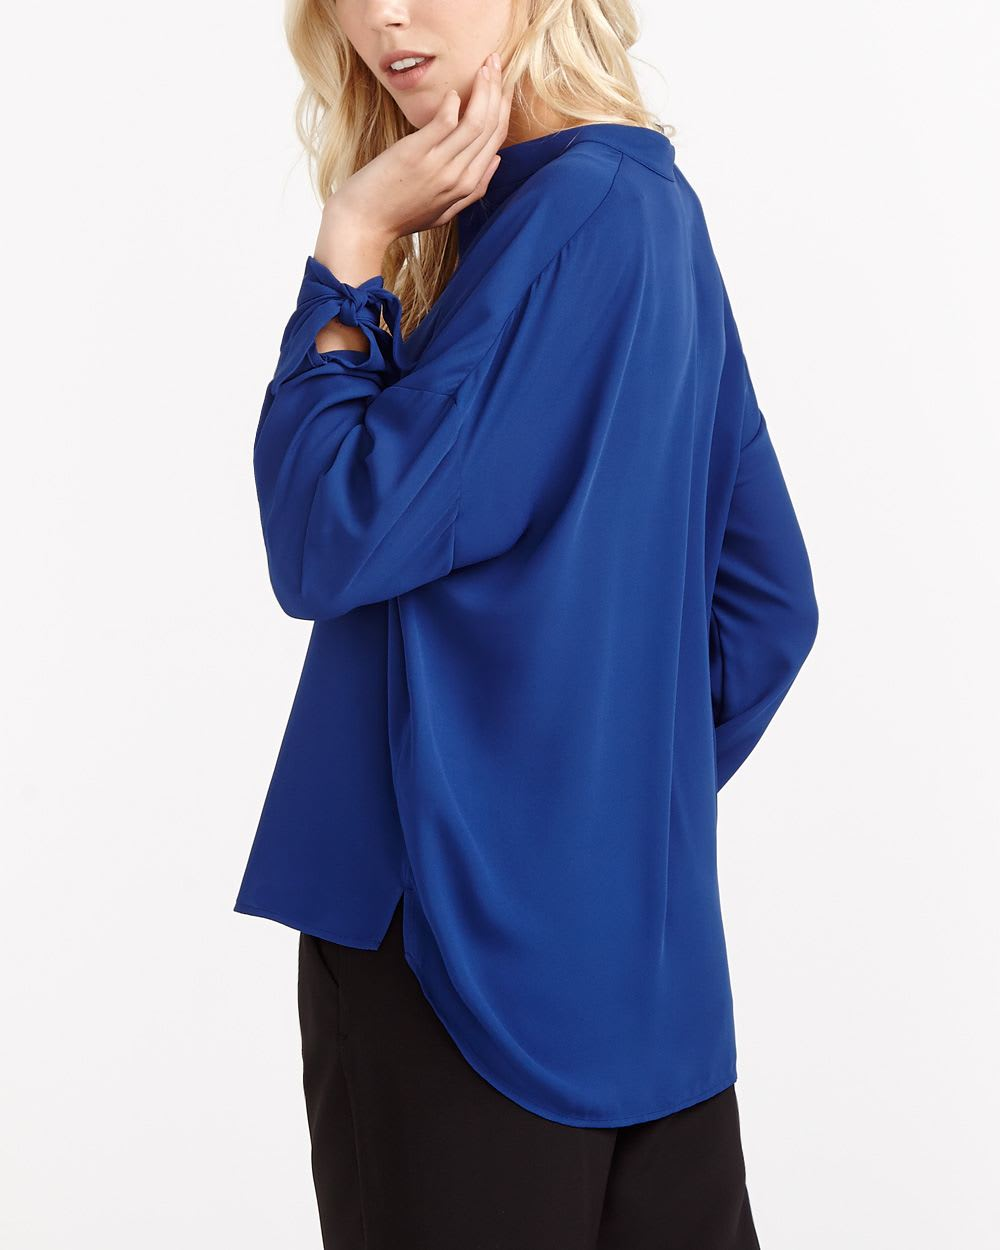 Willow & Thread Knot Cuff Solid Shirt